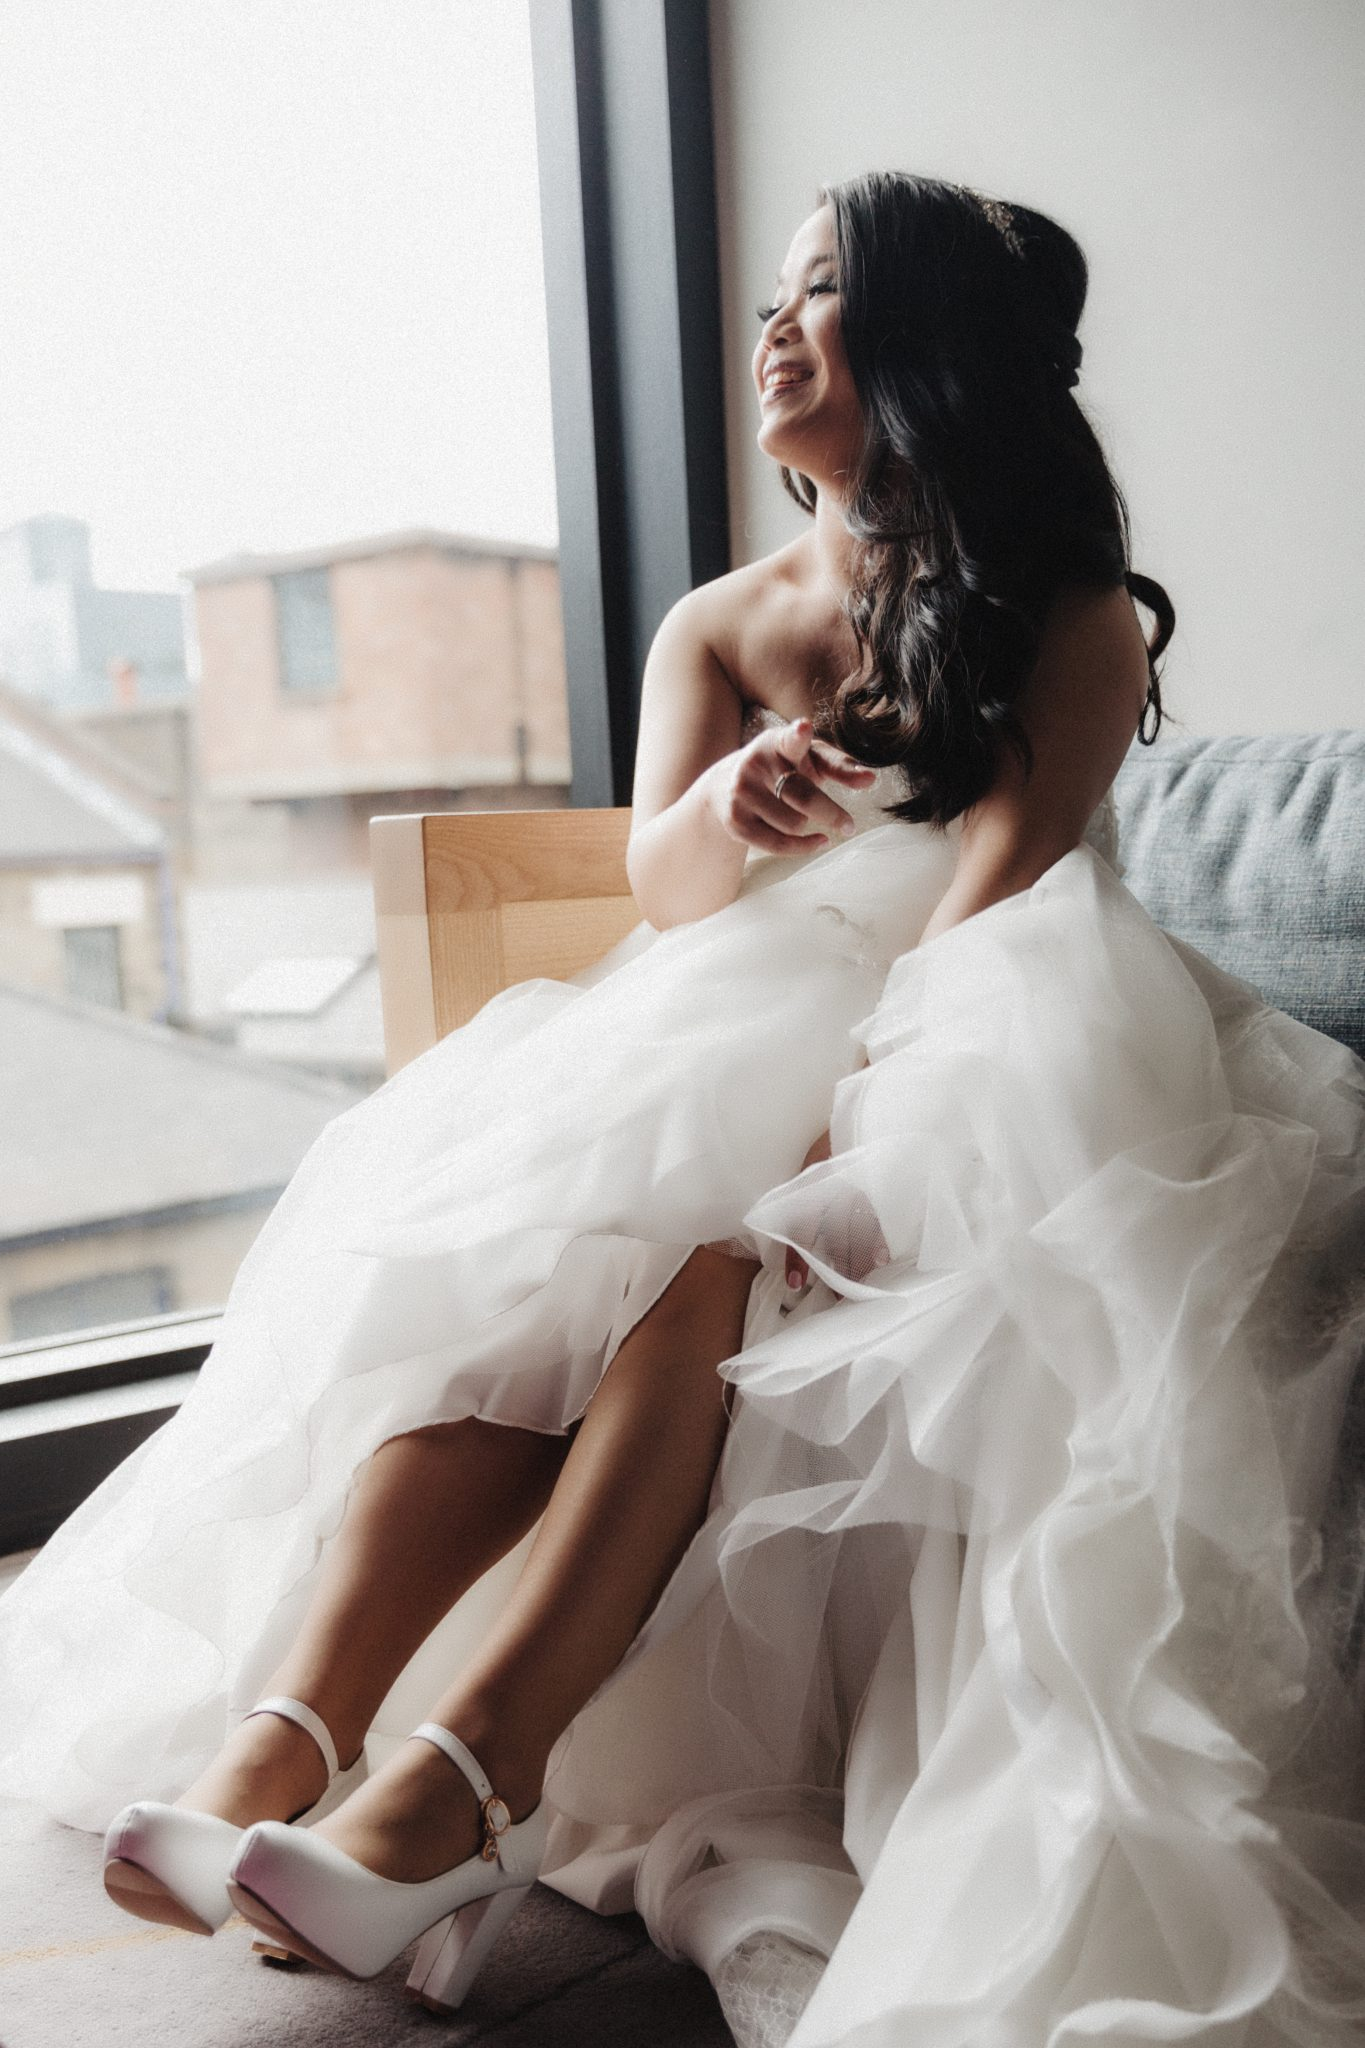 The bride laughing in her white wedding dress